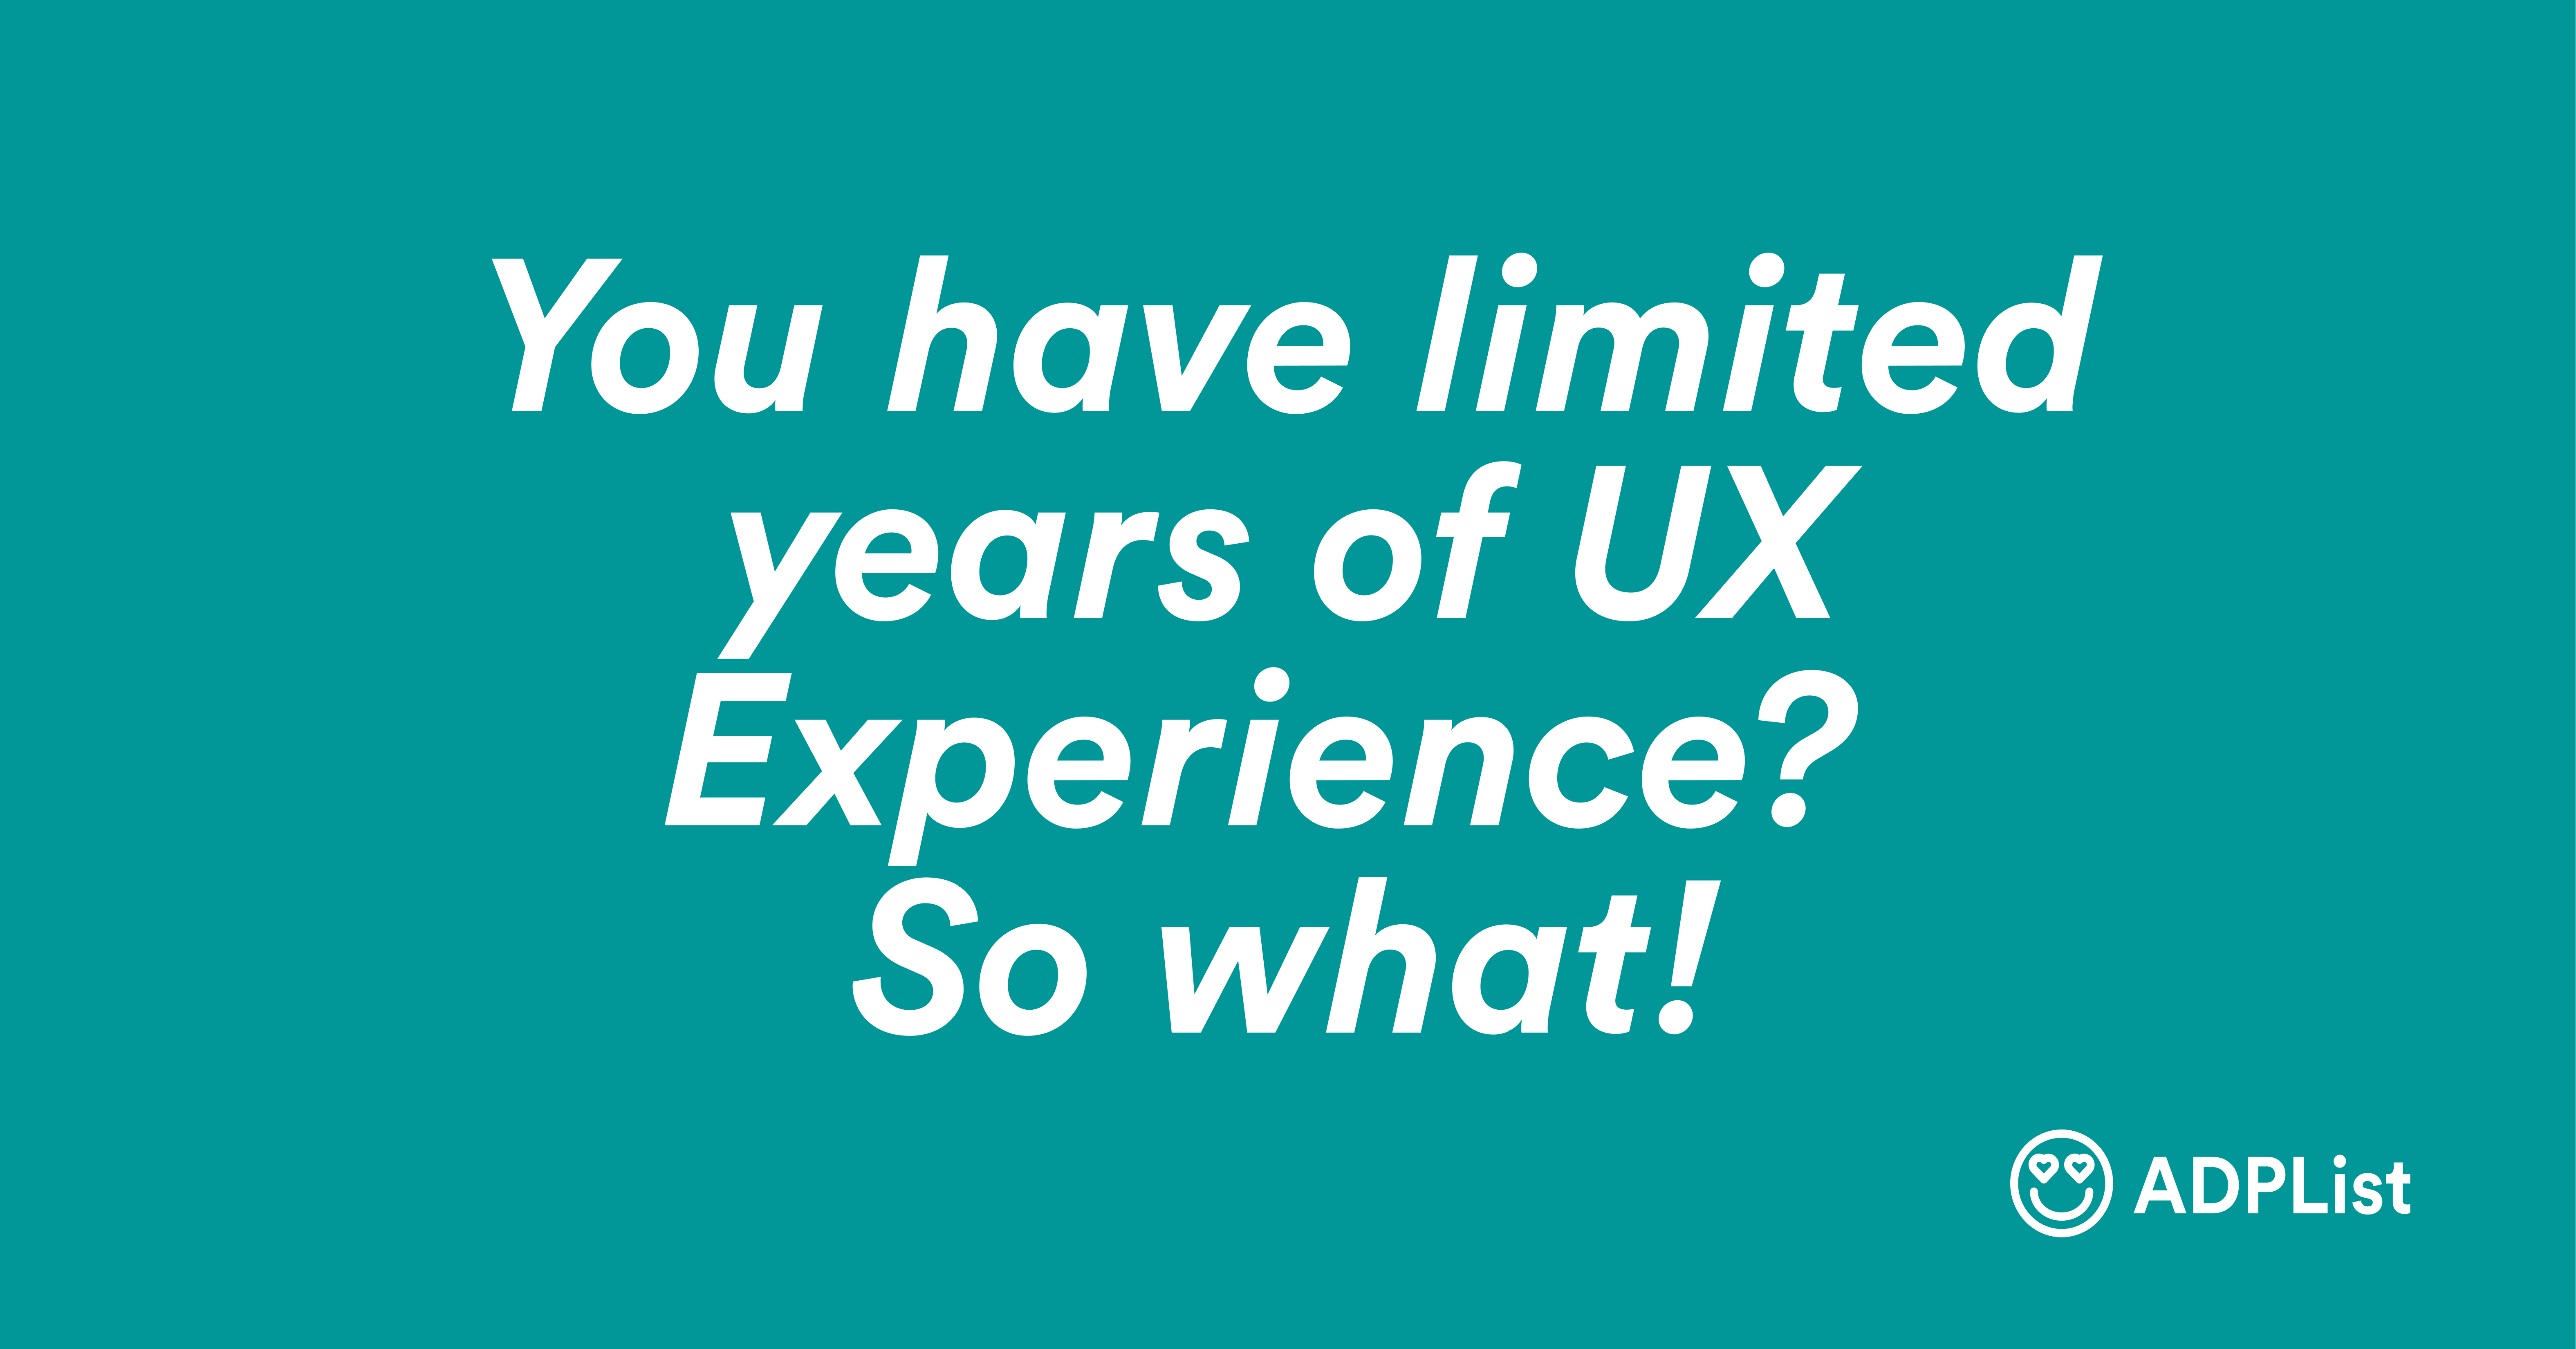 You have limited years of UX experience? So what!